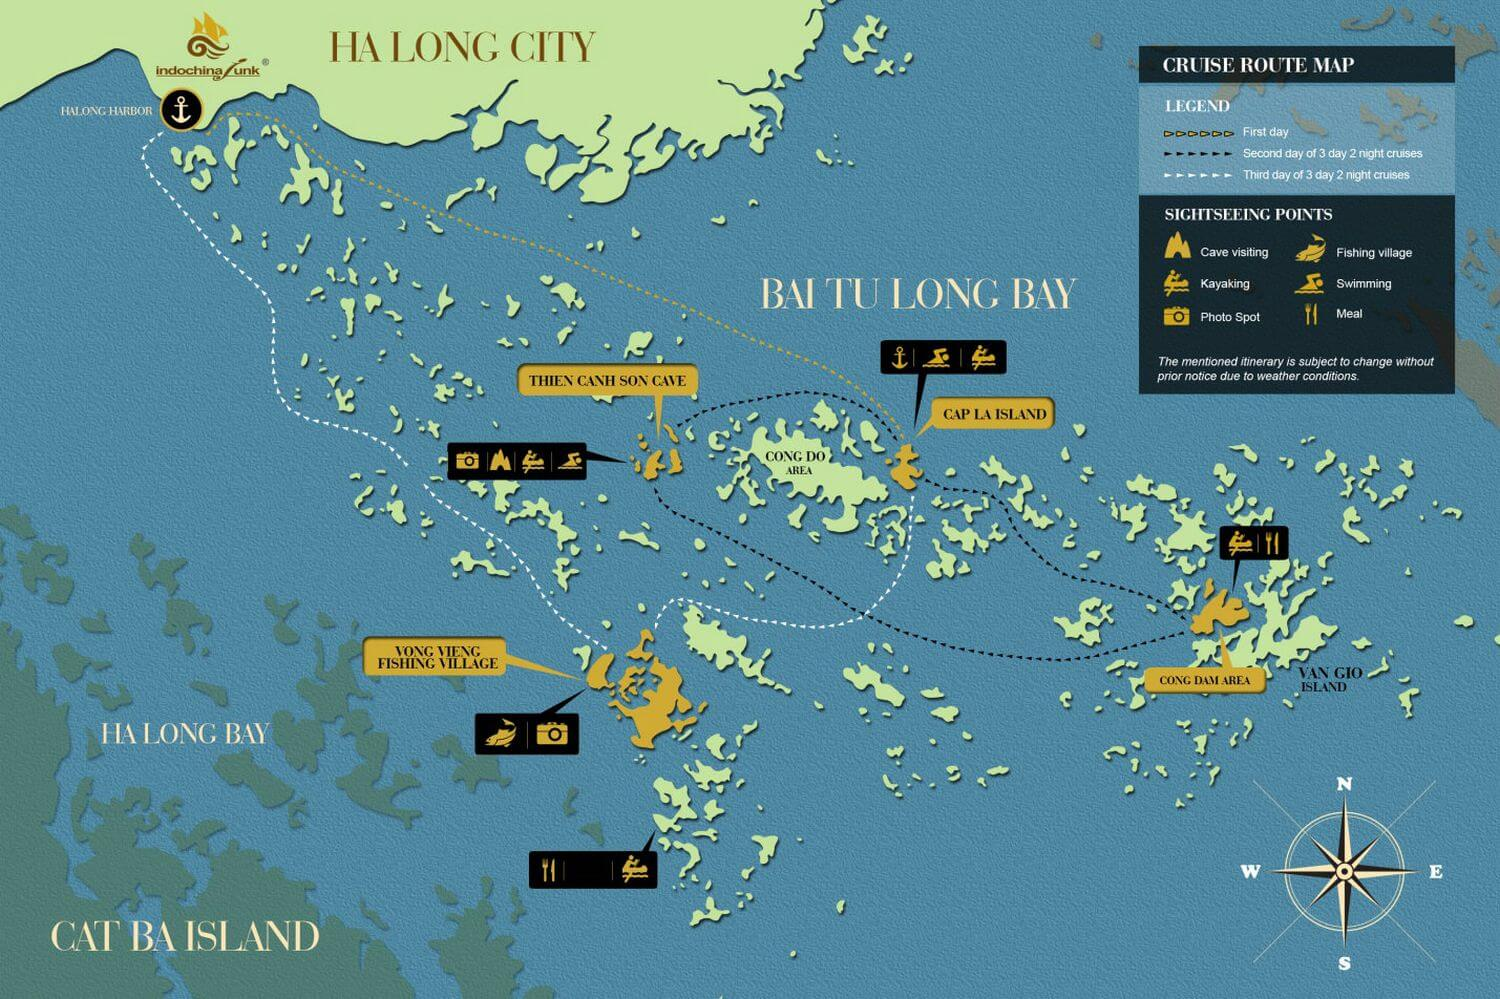 Indochina Junk cruising route